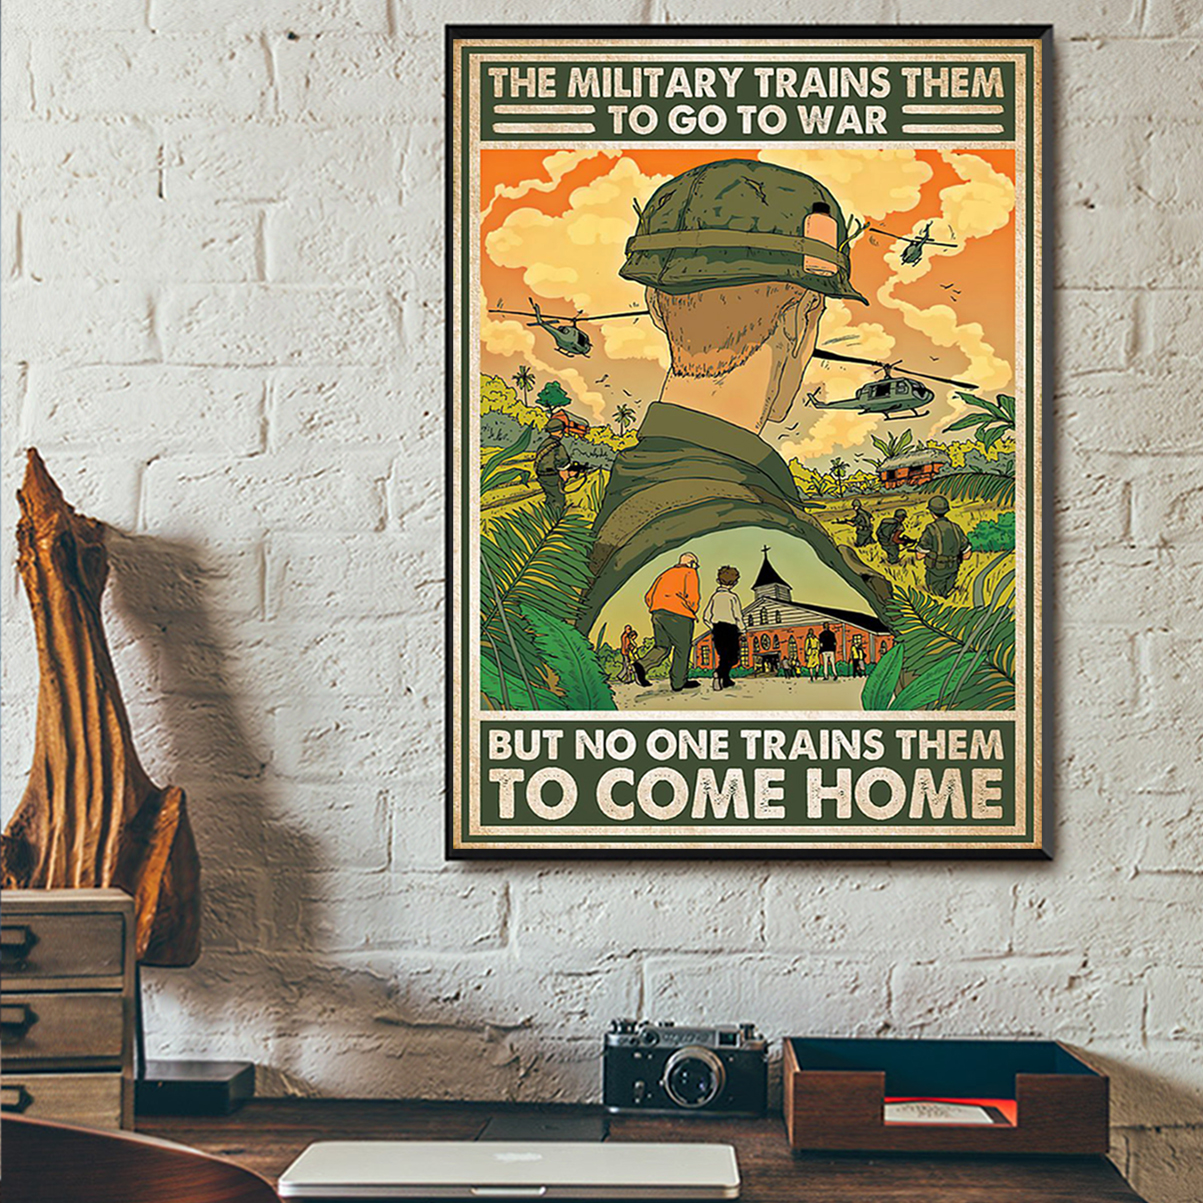 The military trains them to go to war poster A2